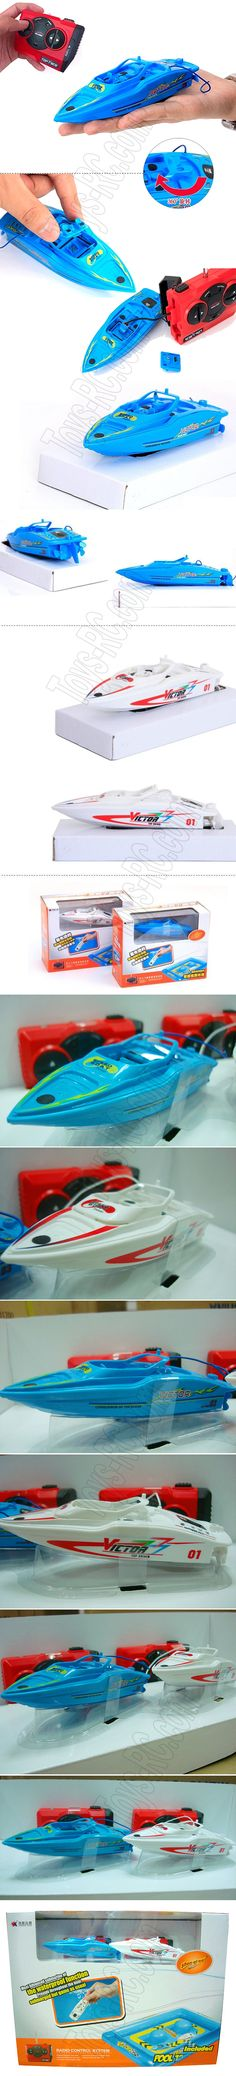 Create Toys 3392 Waterproof Mini Remote Control Racing Boat http://www.toys-rc.com/create-toys-3392-waterproof-mini-remote-control-racing-boat-p-300.html